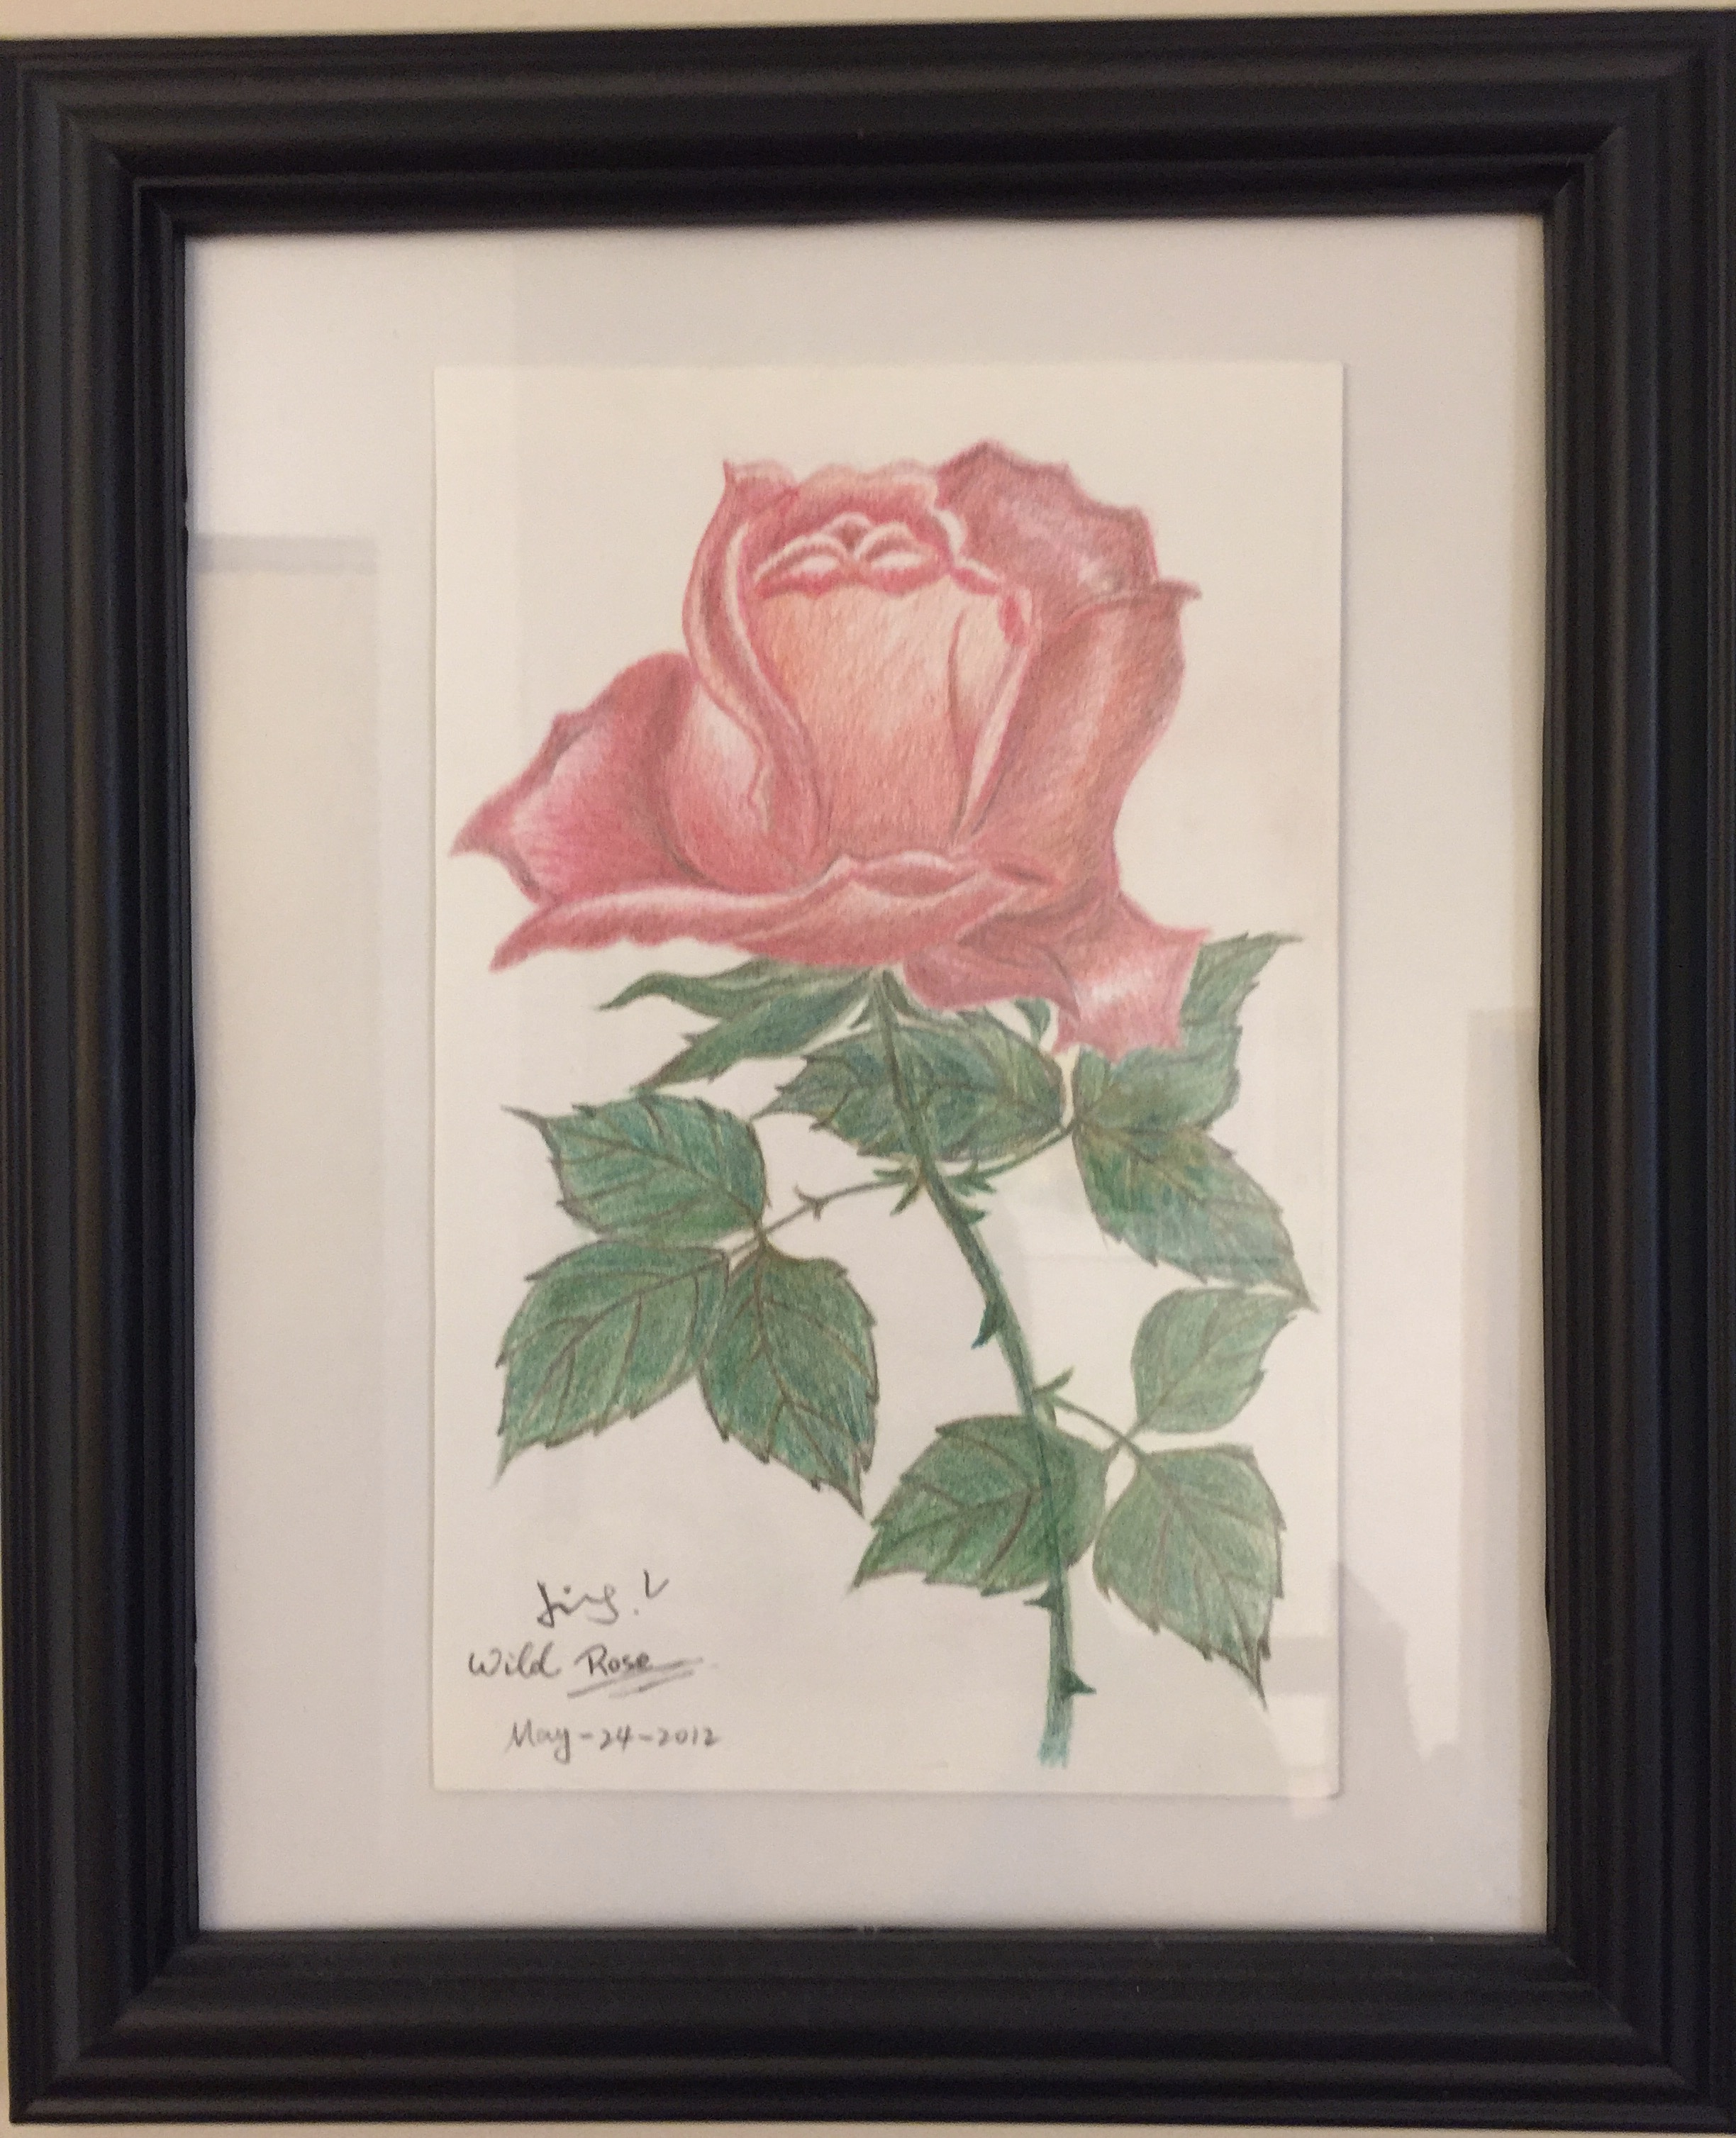 colour pencil drawing of a wild rose